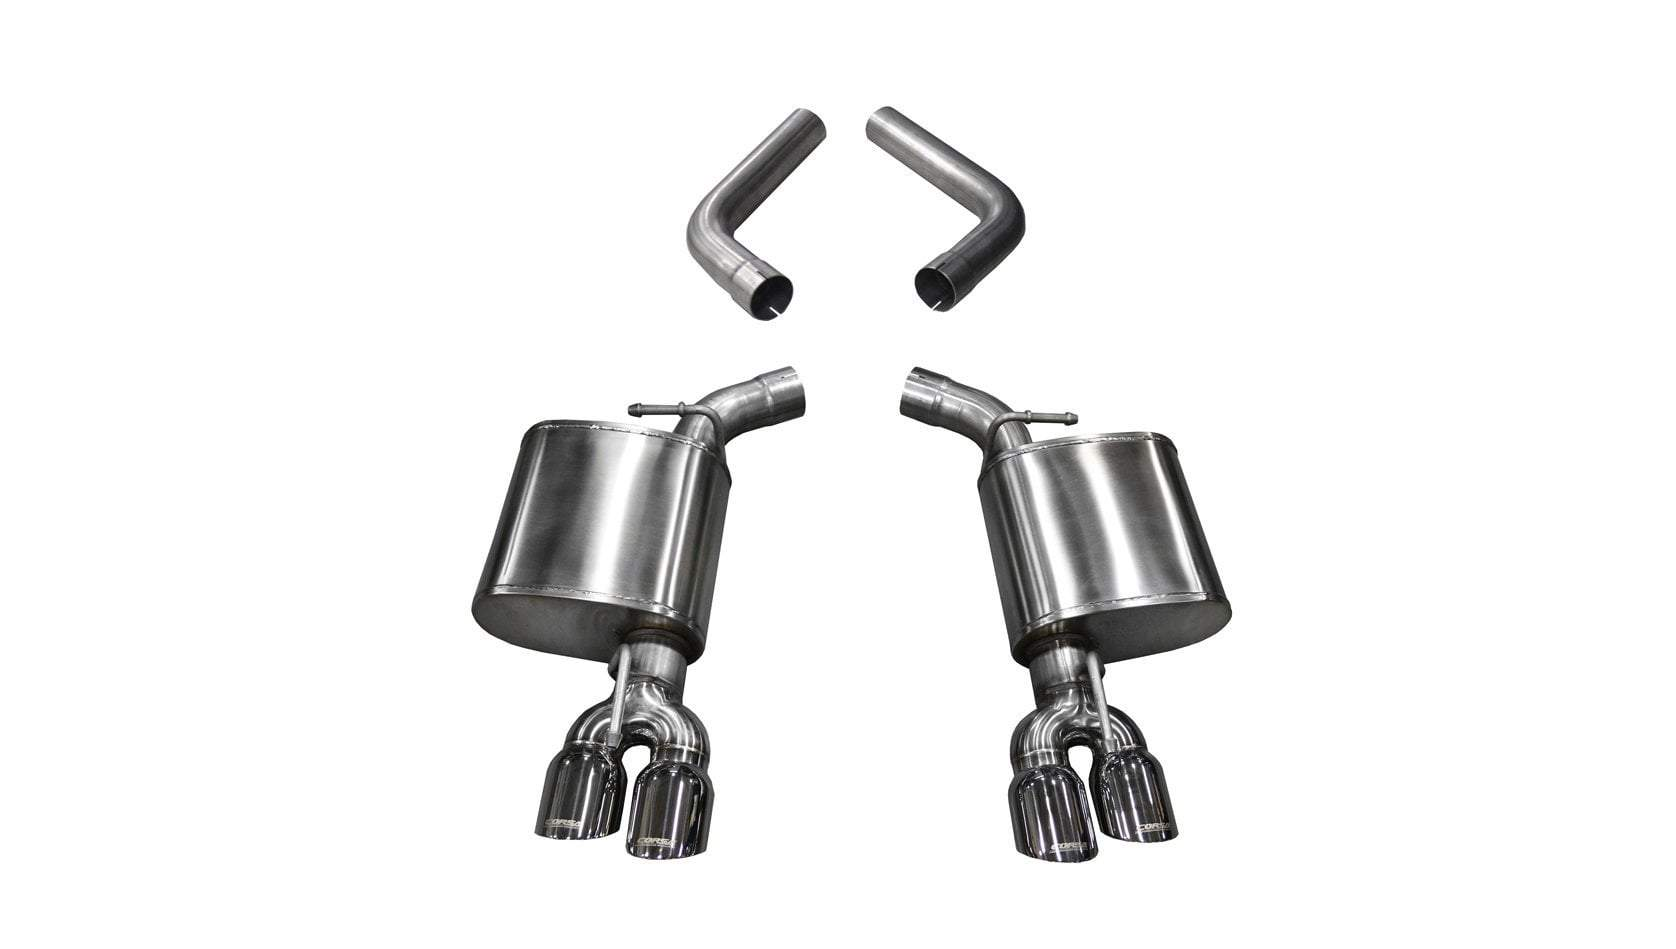 "CORSA PERFORMANCE Axle-Back Exhaust Polished / Sport / Dual Rear - Twin 3.5in 2015-2019 Dodge Challenger 6.4L/6.2L V8, 2017-2019 5.7L V8, 2.75"" Dual Rear Exit Axle-back Exhaust System with Twin 3.5"" Tips (21020) Sport Sound Level"